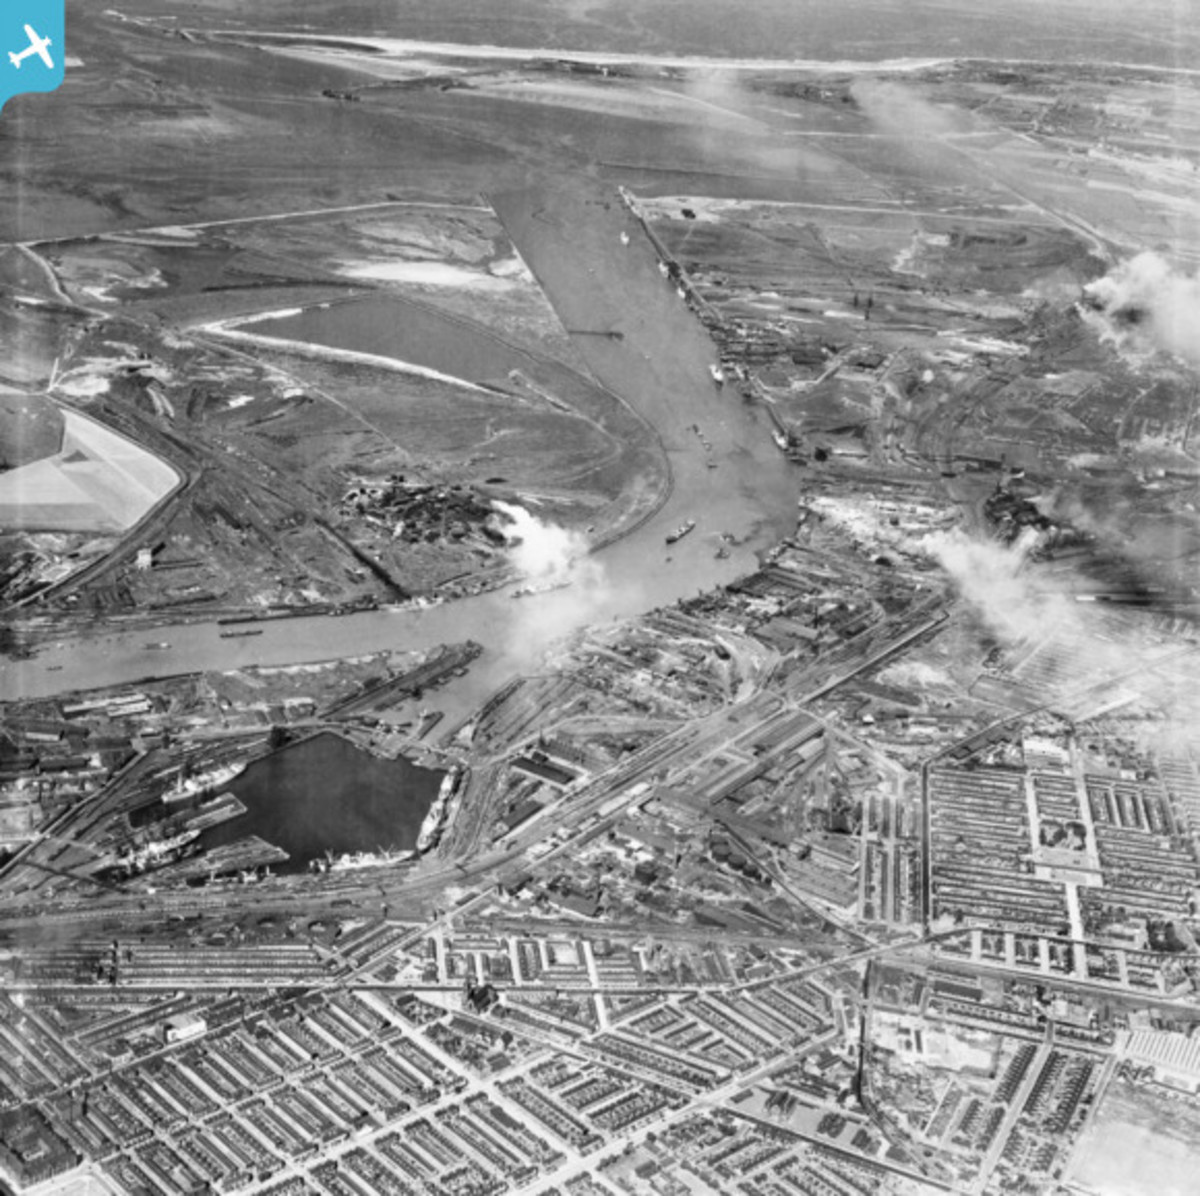 In the foreground in this view from the 1950s are Middlesbrough Docks, further along is Cargo Fleet and the railway to Redcar